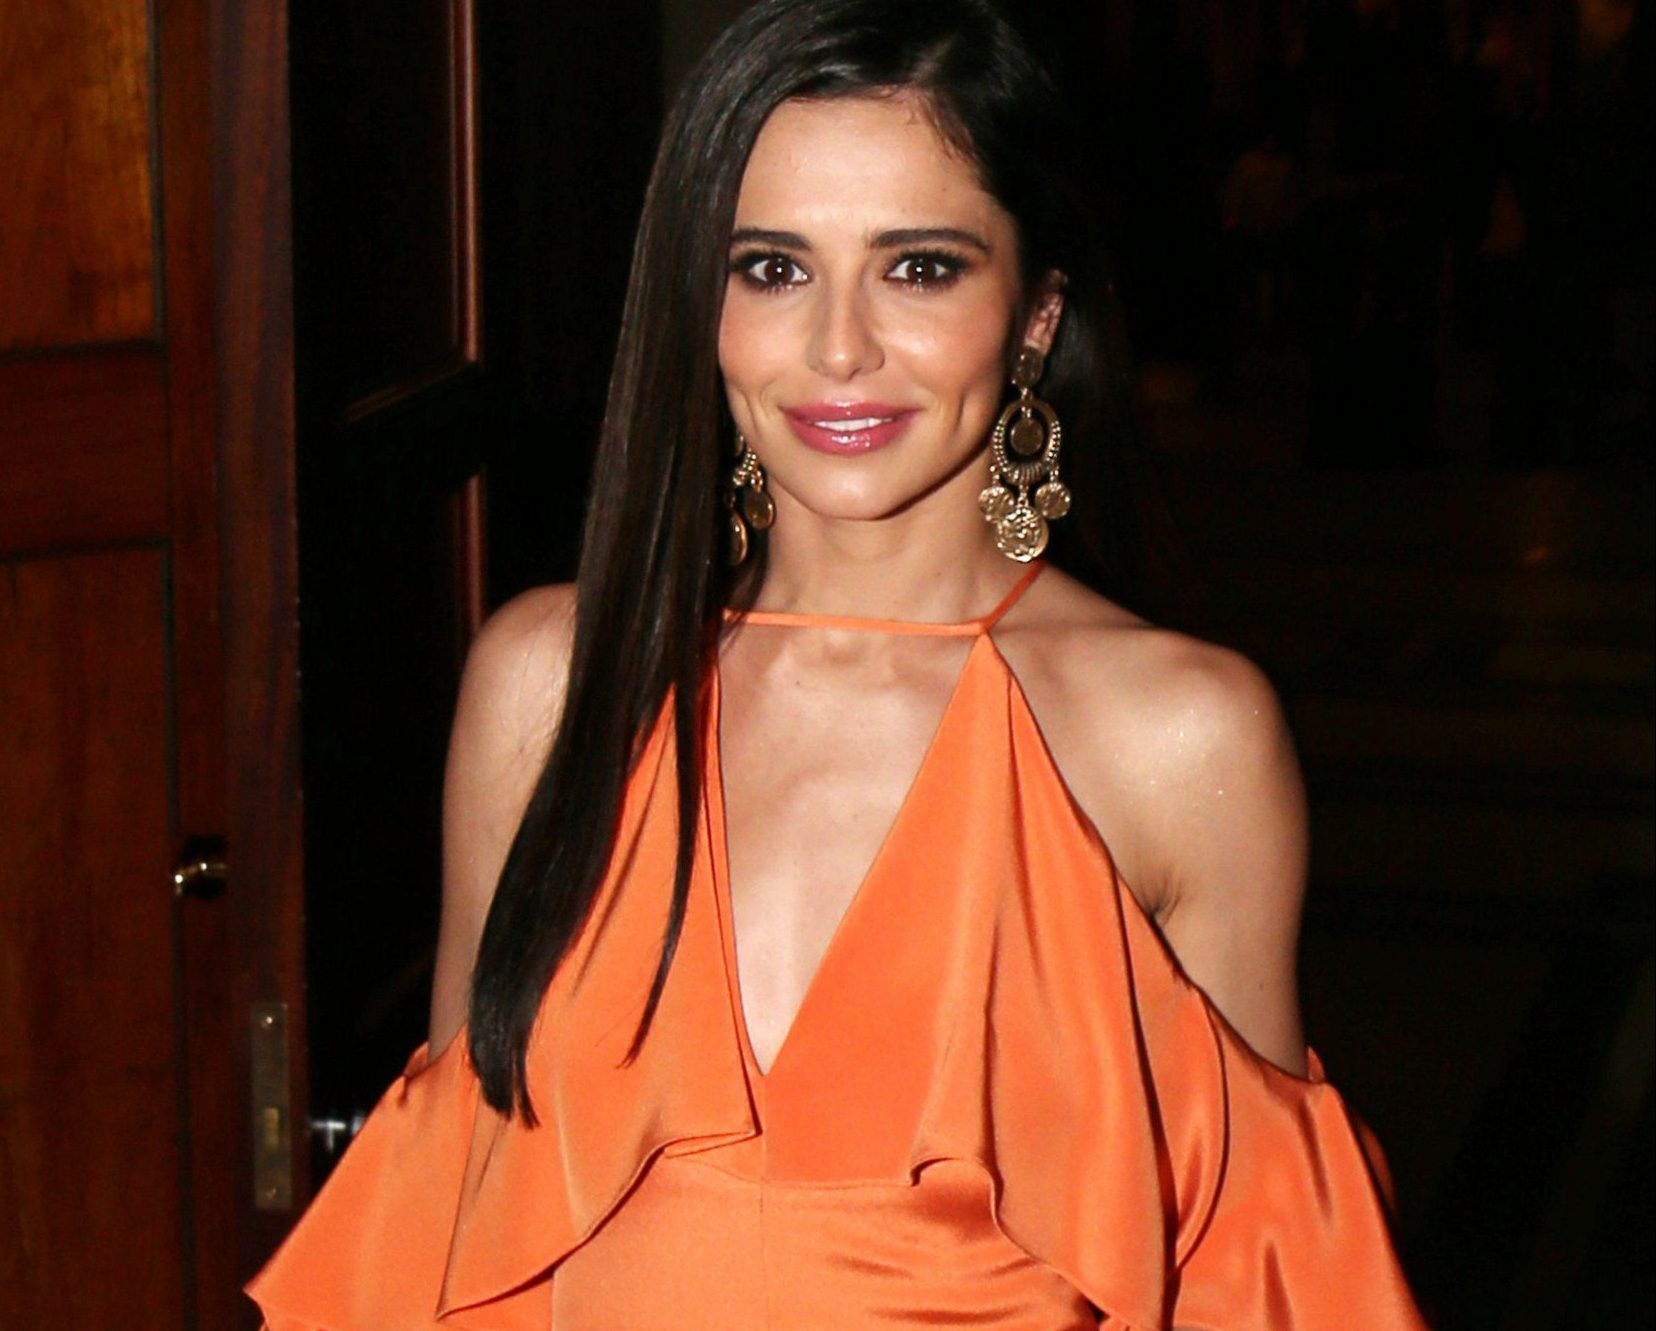 Cheryl is 'sad and lonely after painful Liam Payne split' as she plans to use heartbreak in new music